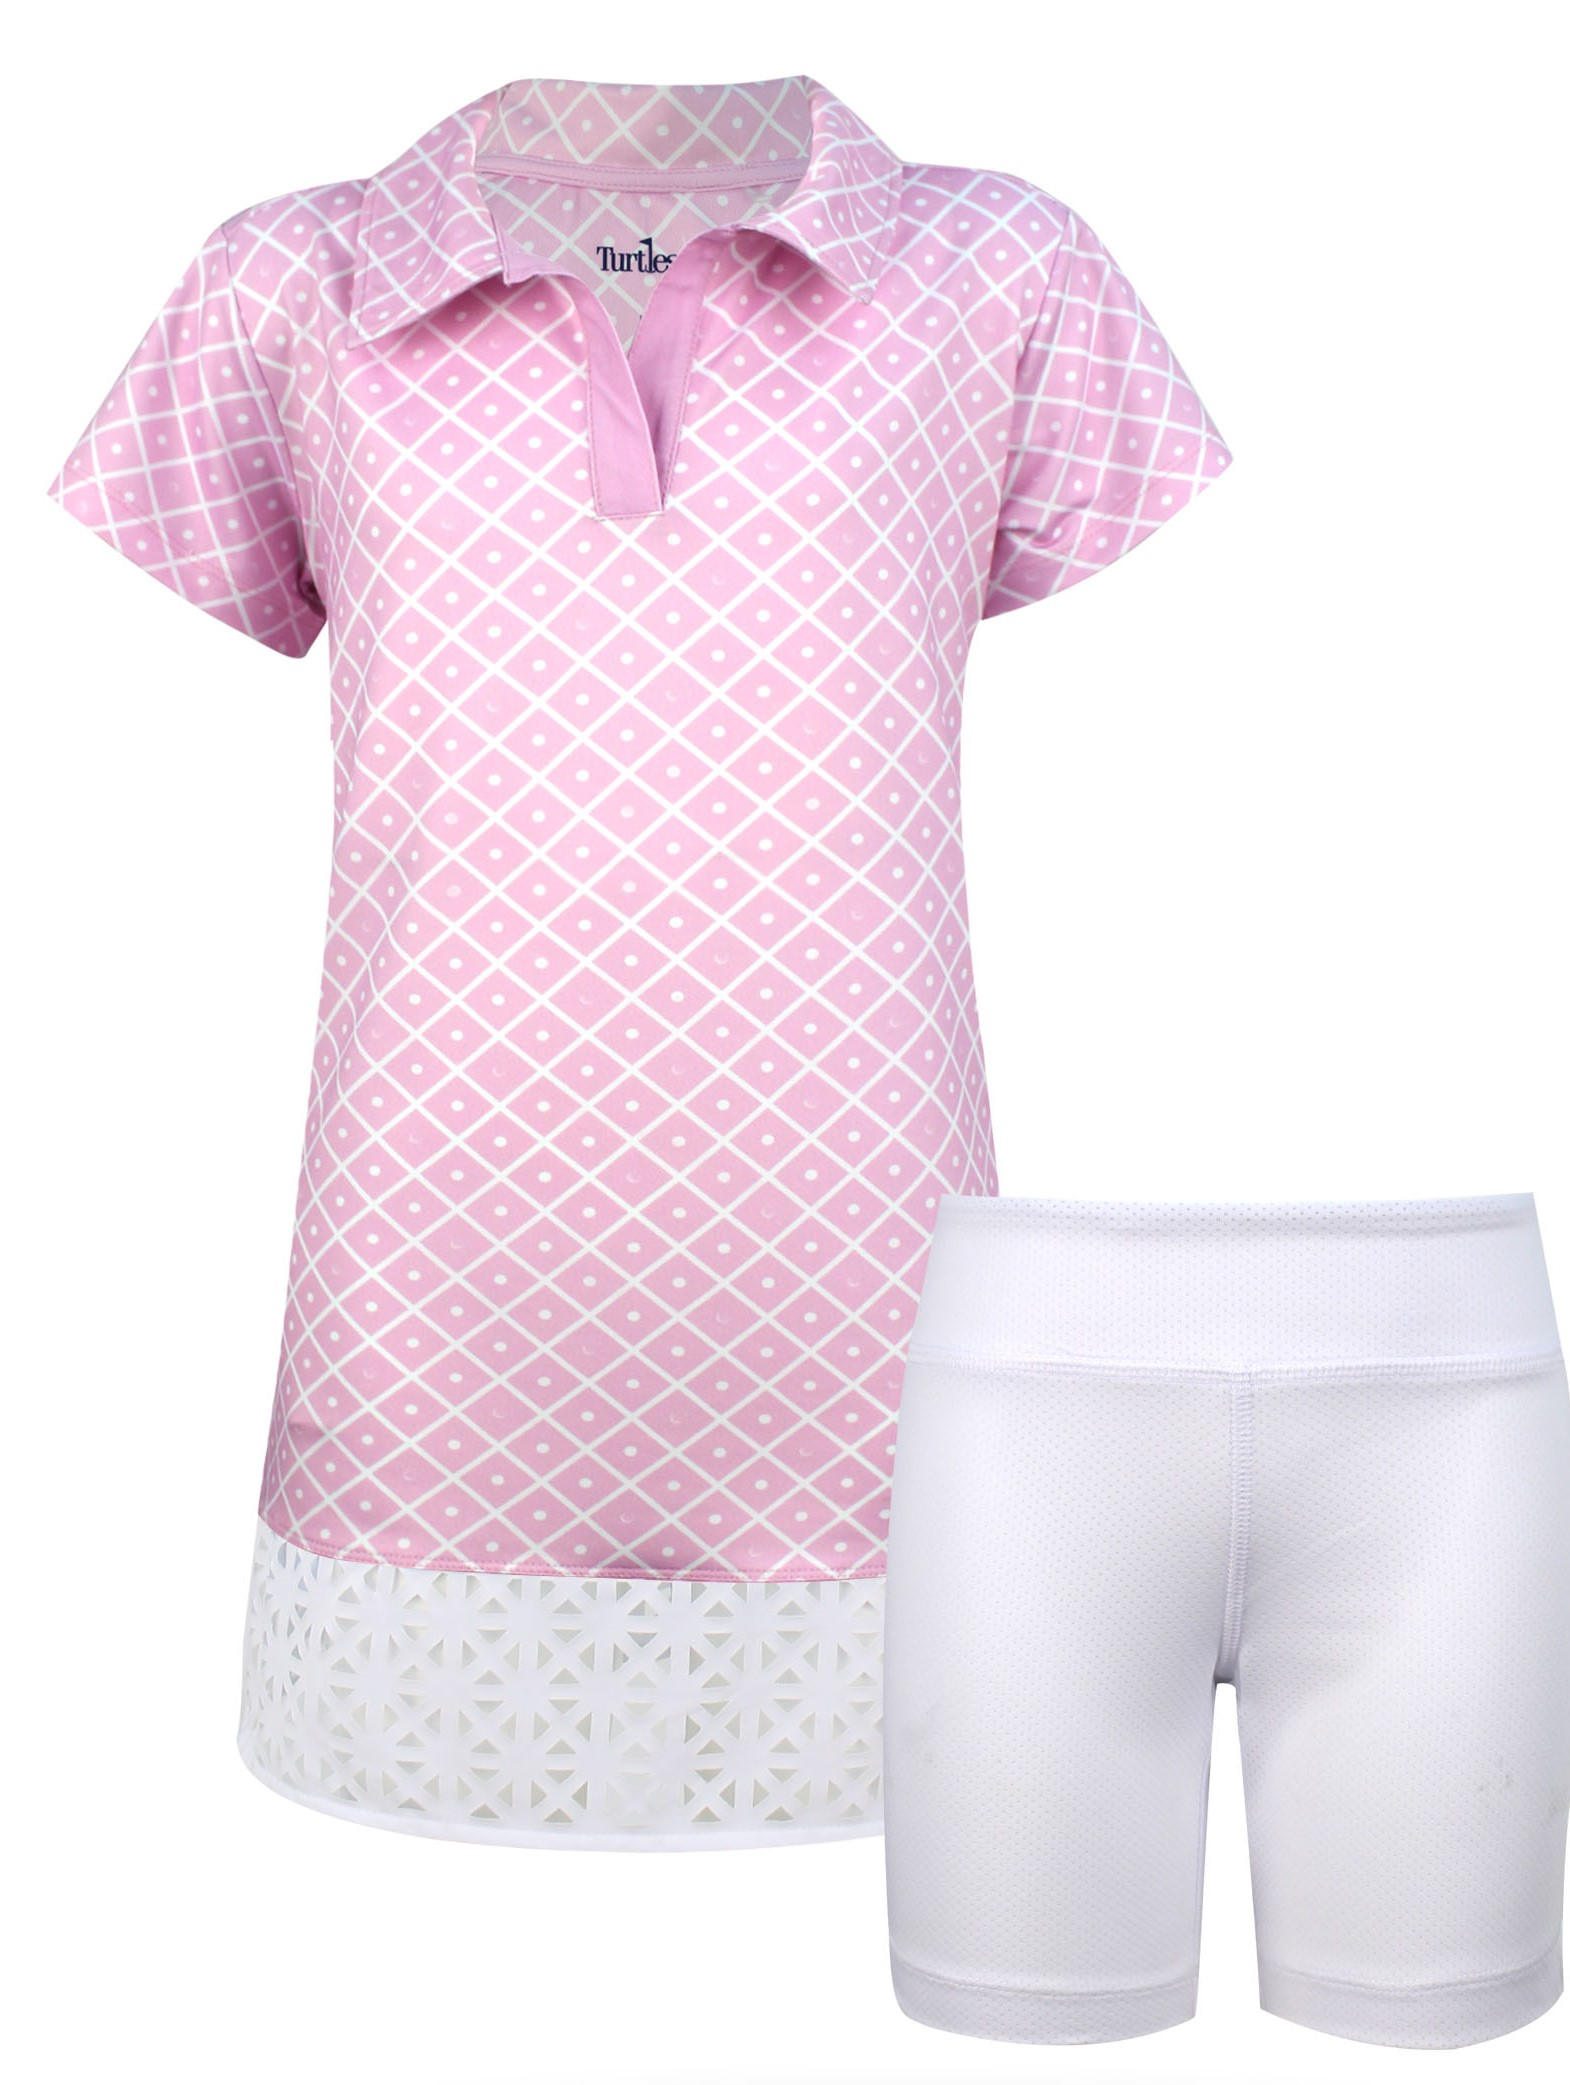 Charlotte Girls Short Sleeve Golf And Tennis Dress In Pink Diamond On The Green Print